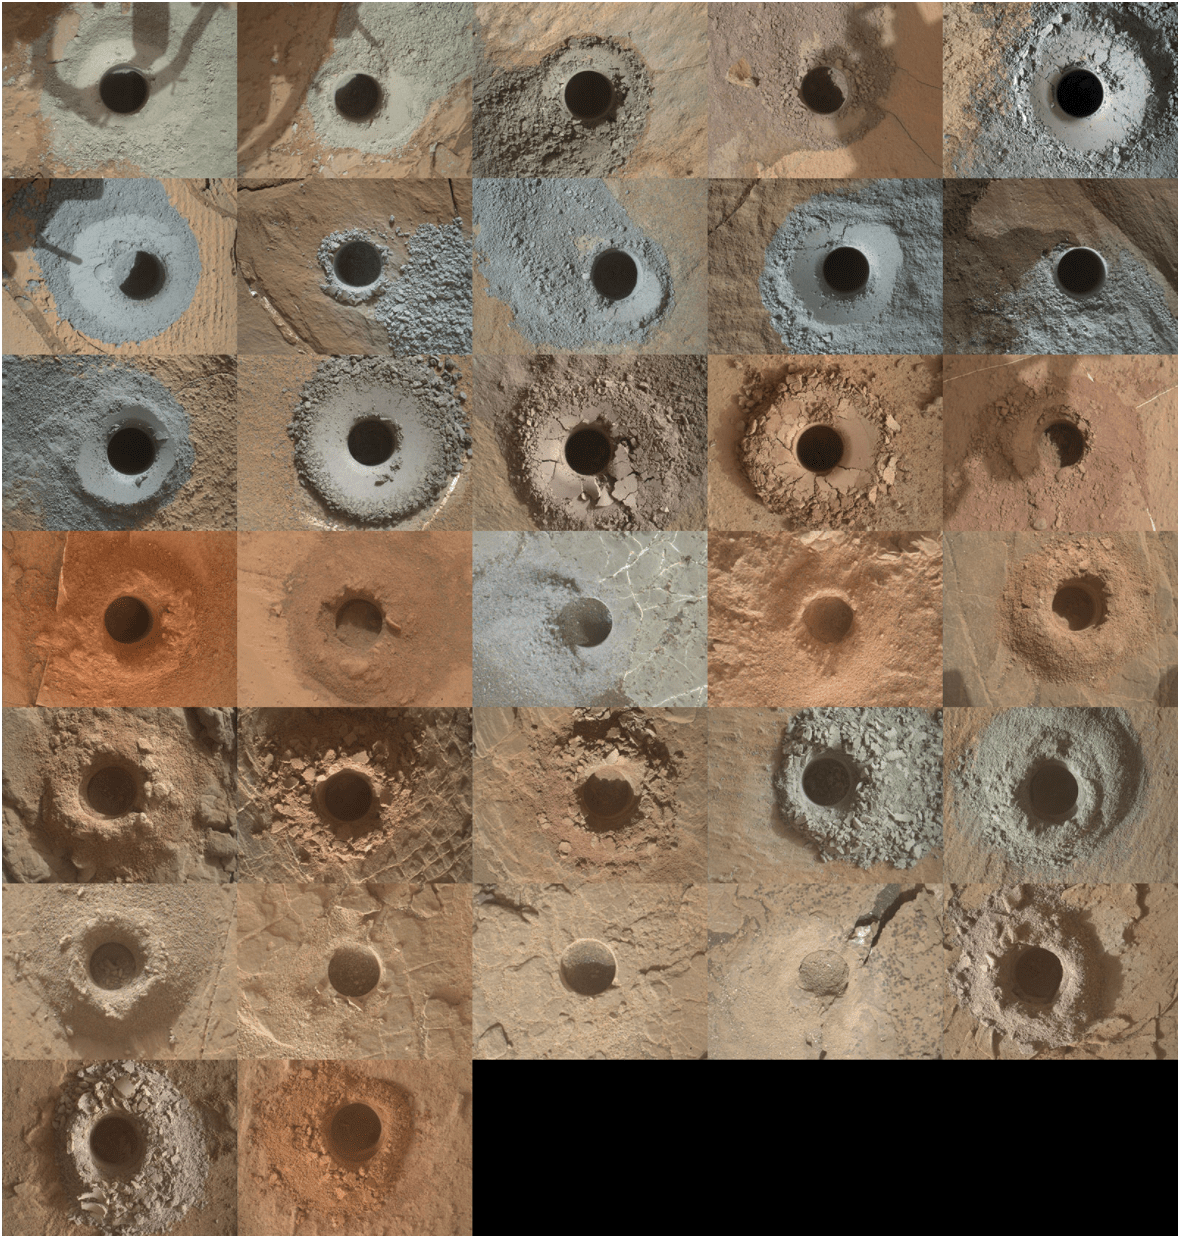 NASA's Curiosity Mars rover has used the drill on its robotic arm to take 32 rock samples to date.